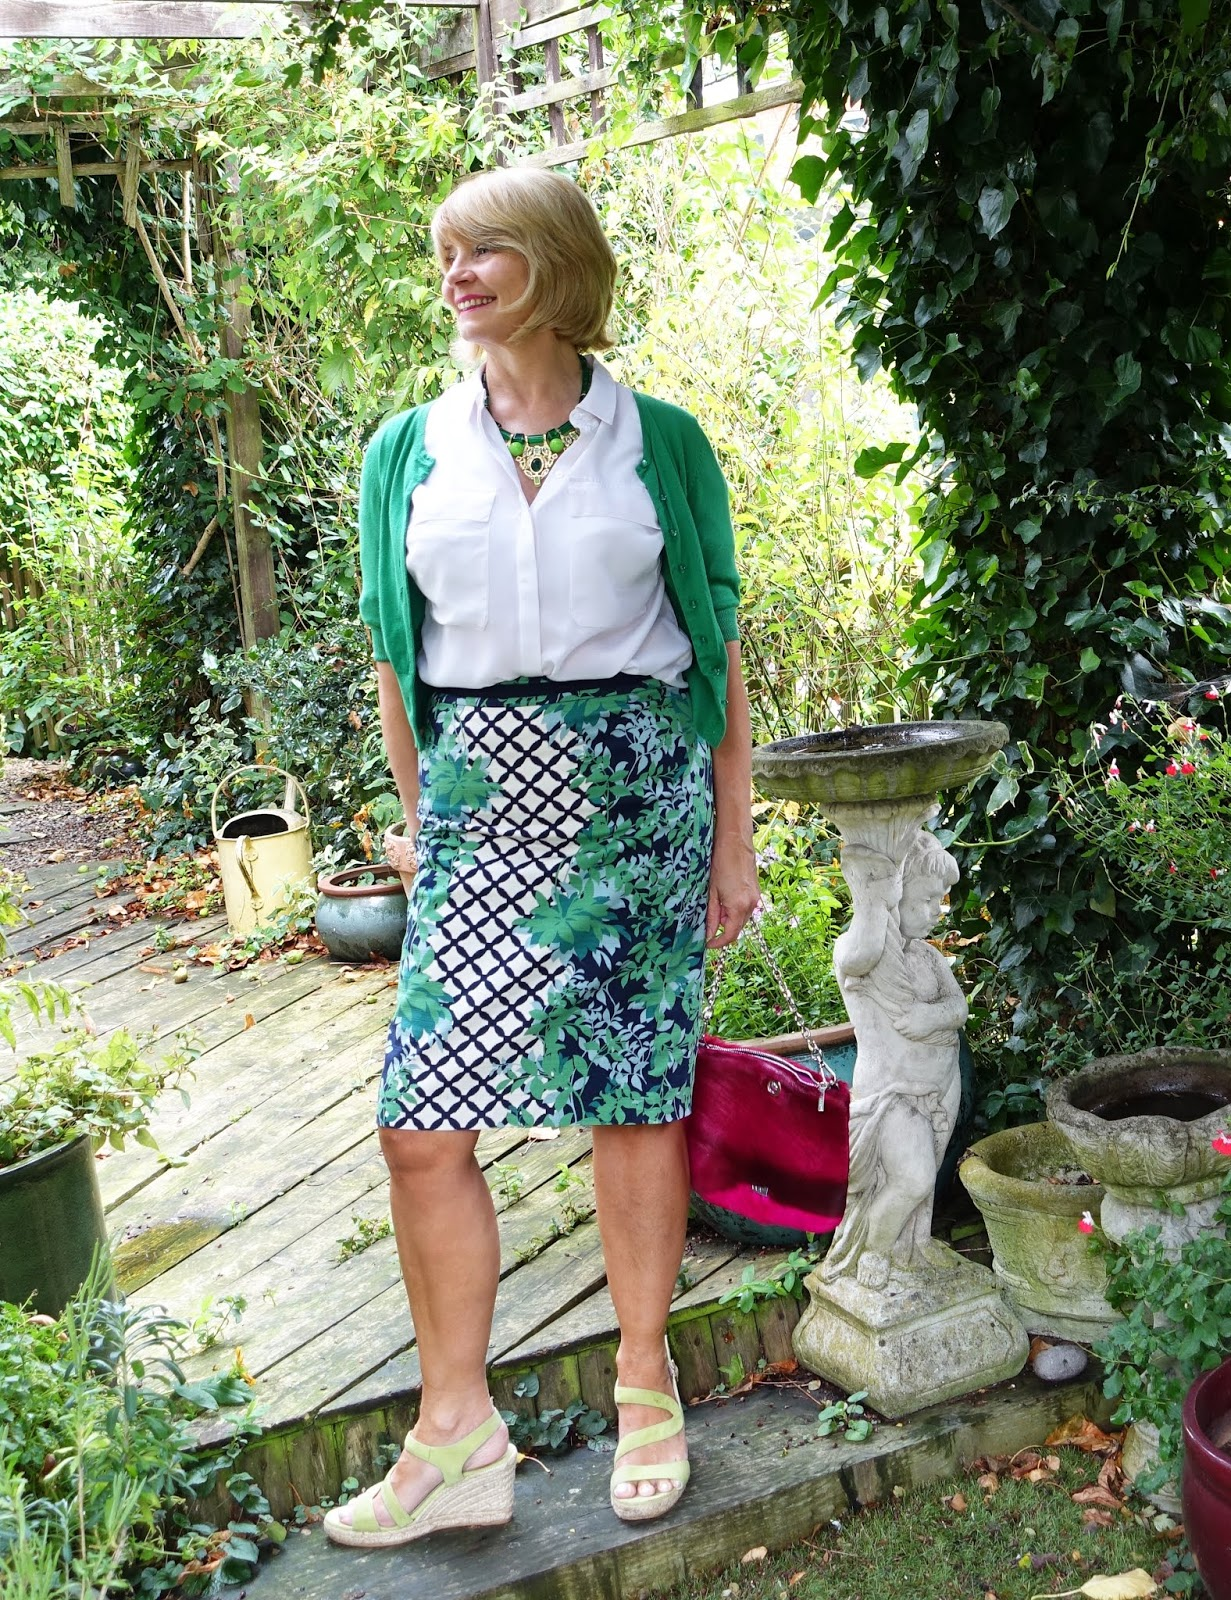 Garden shot of over 50s woman in green and white outfit with striking green necklace and pink bag